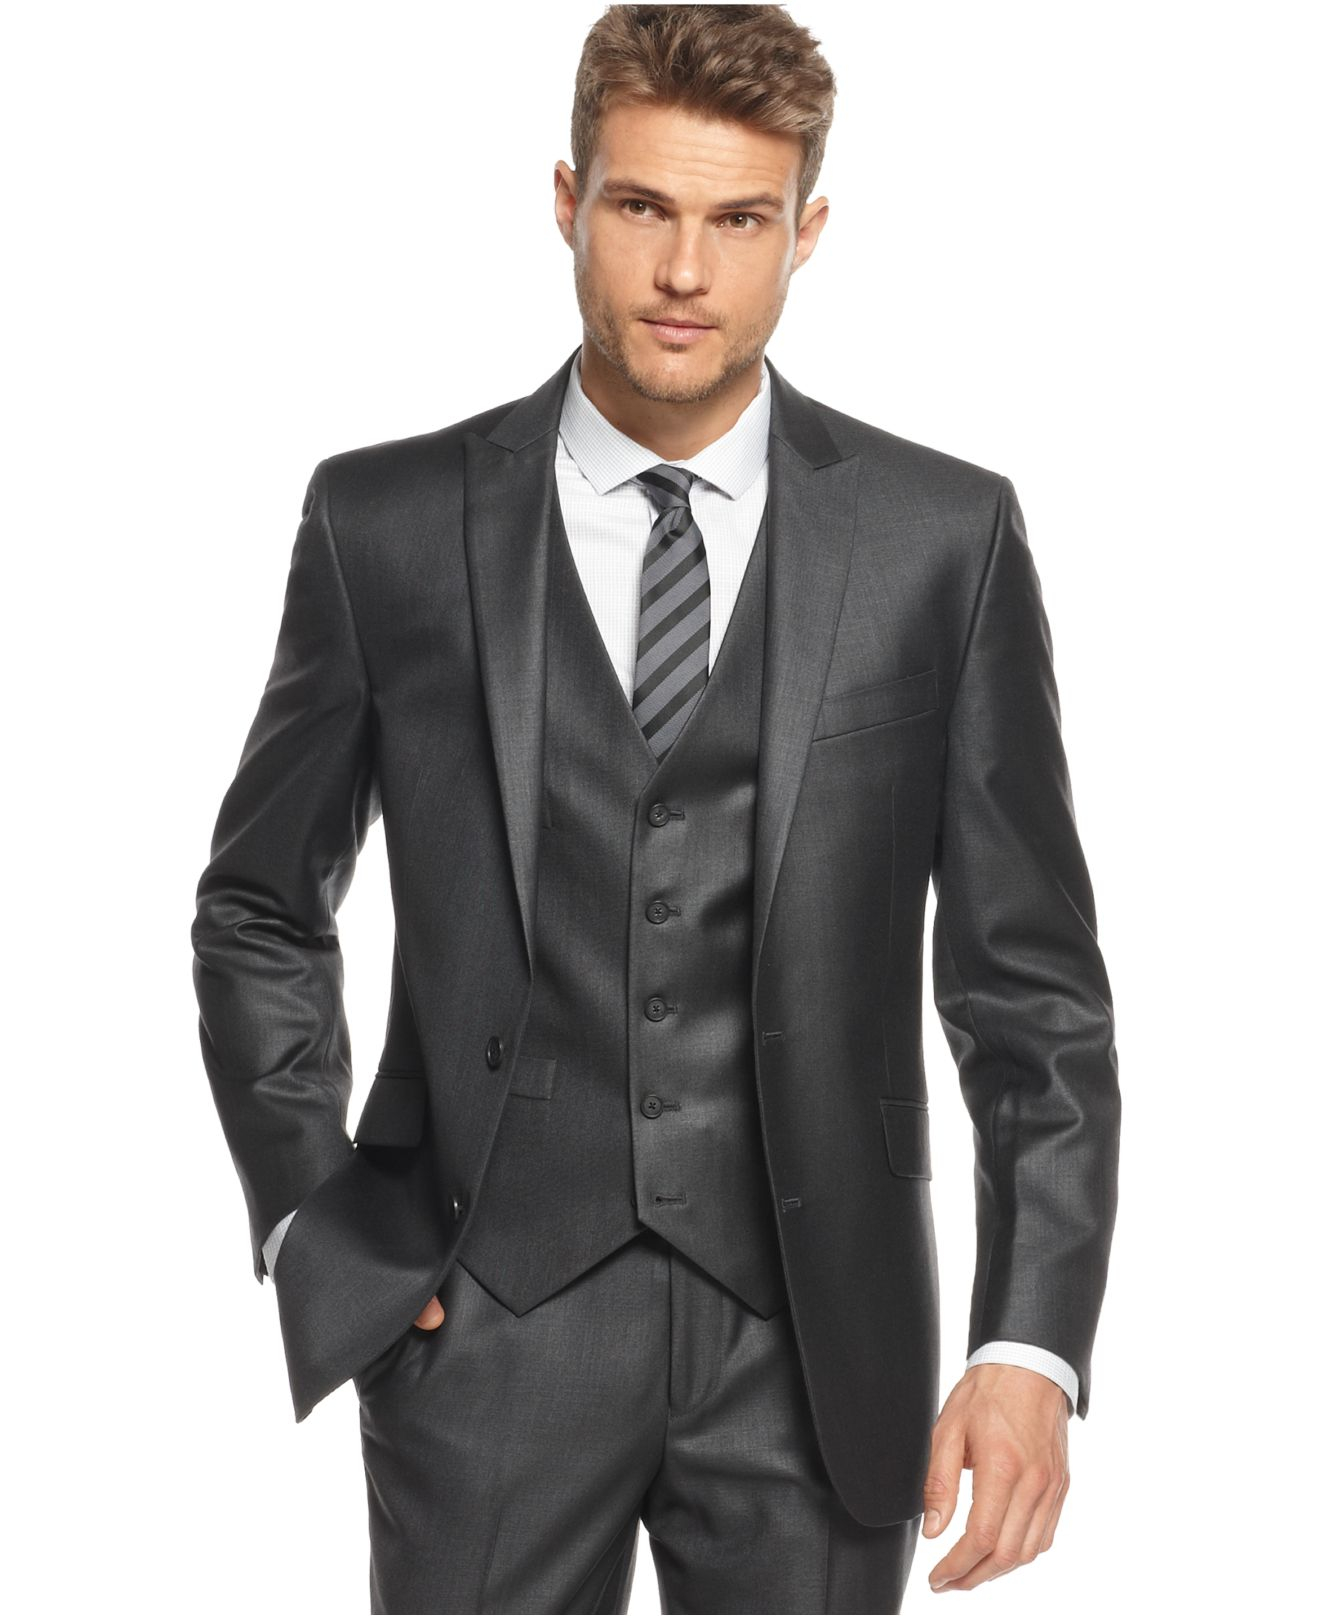 Charcoal Grey Suit Slim Fit | www.pixshark.com - Images ...